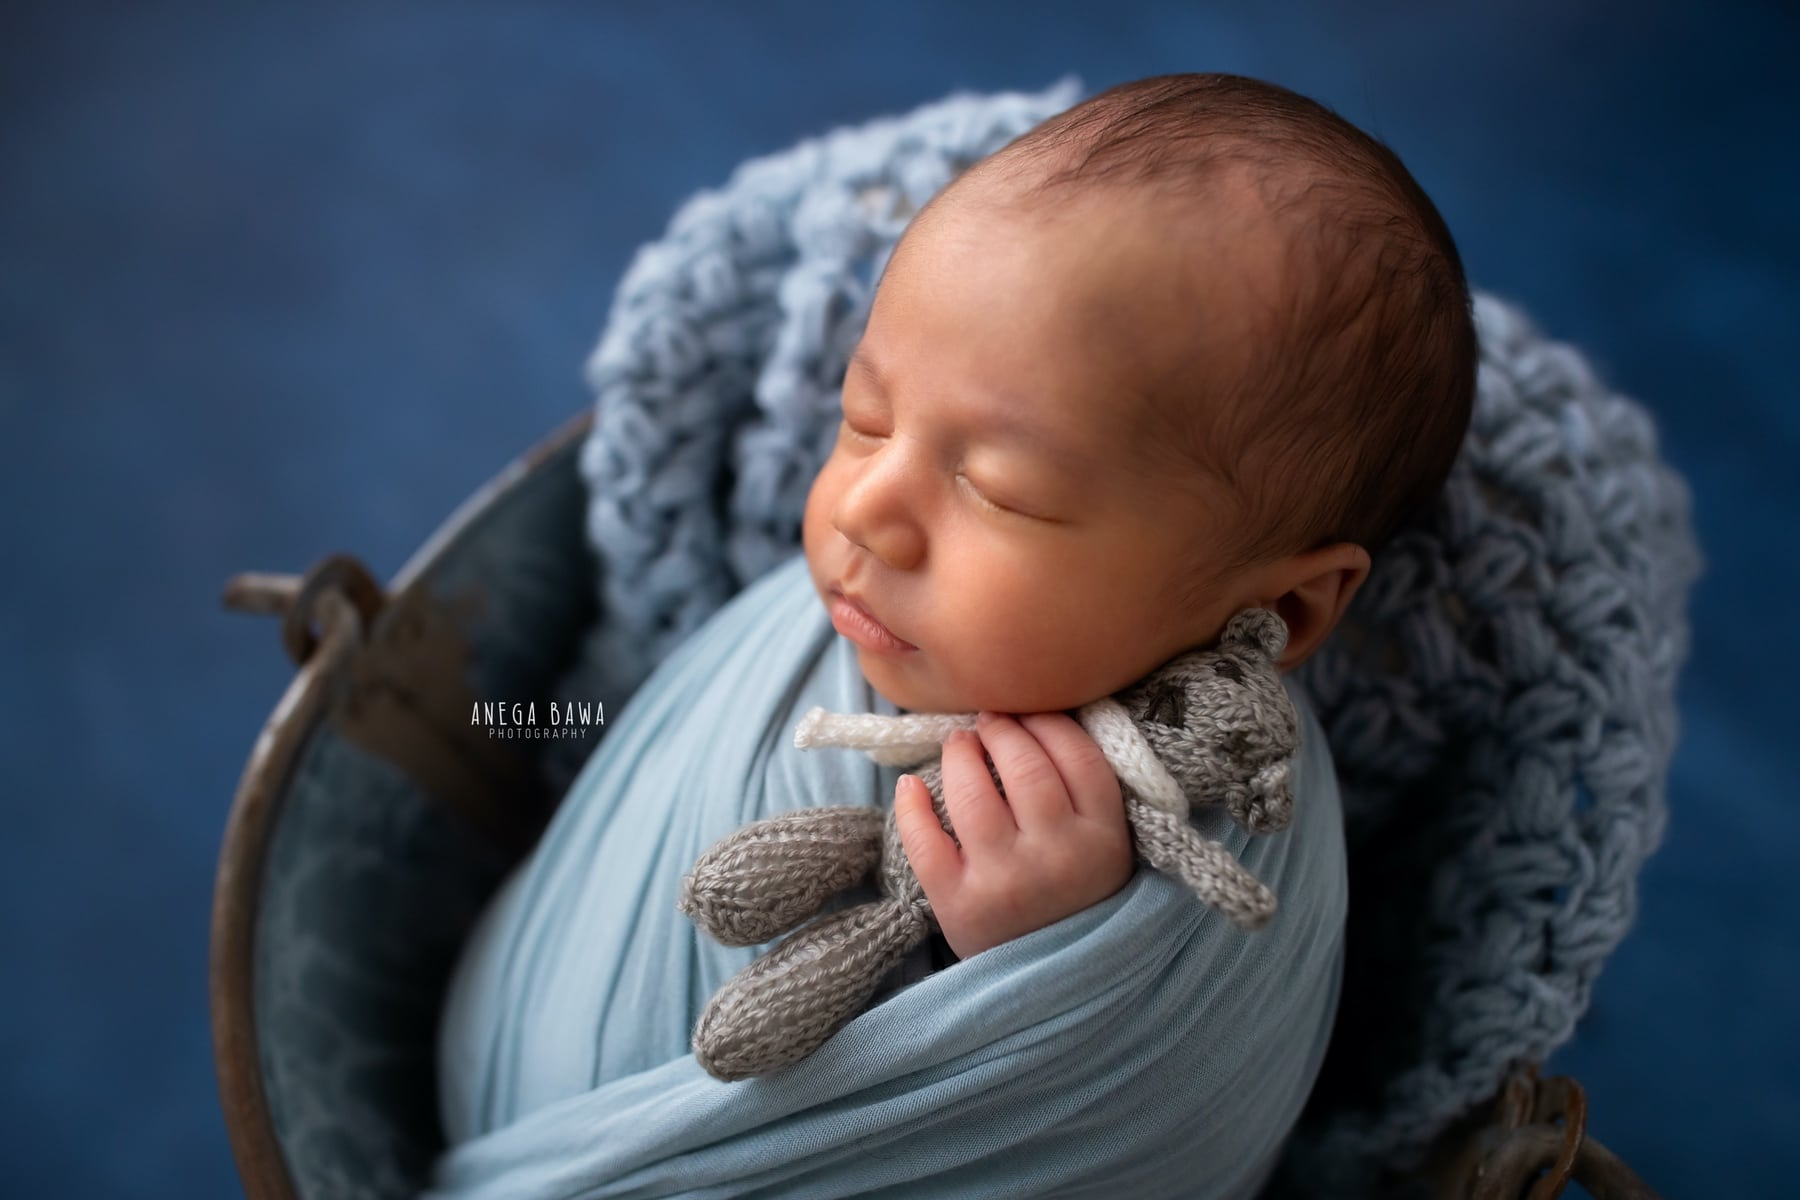 blue newborn photography delhi 11 days baby boy photoshoot gurgaon anega bawa